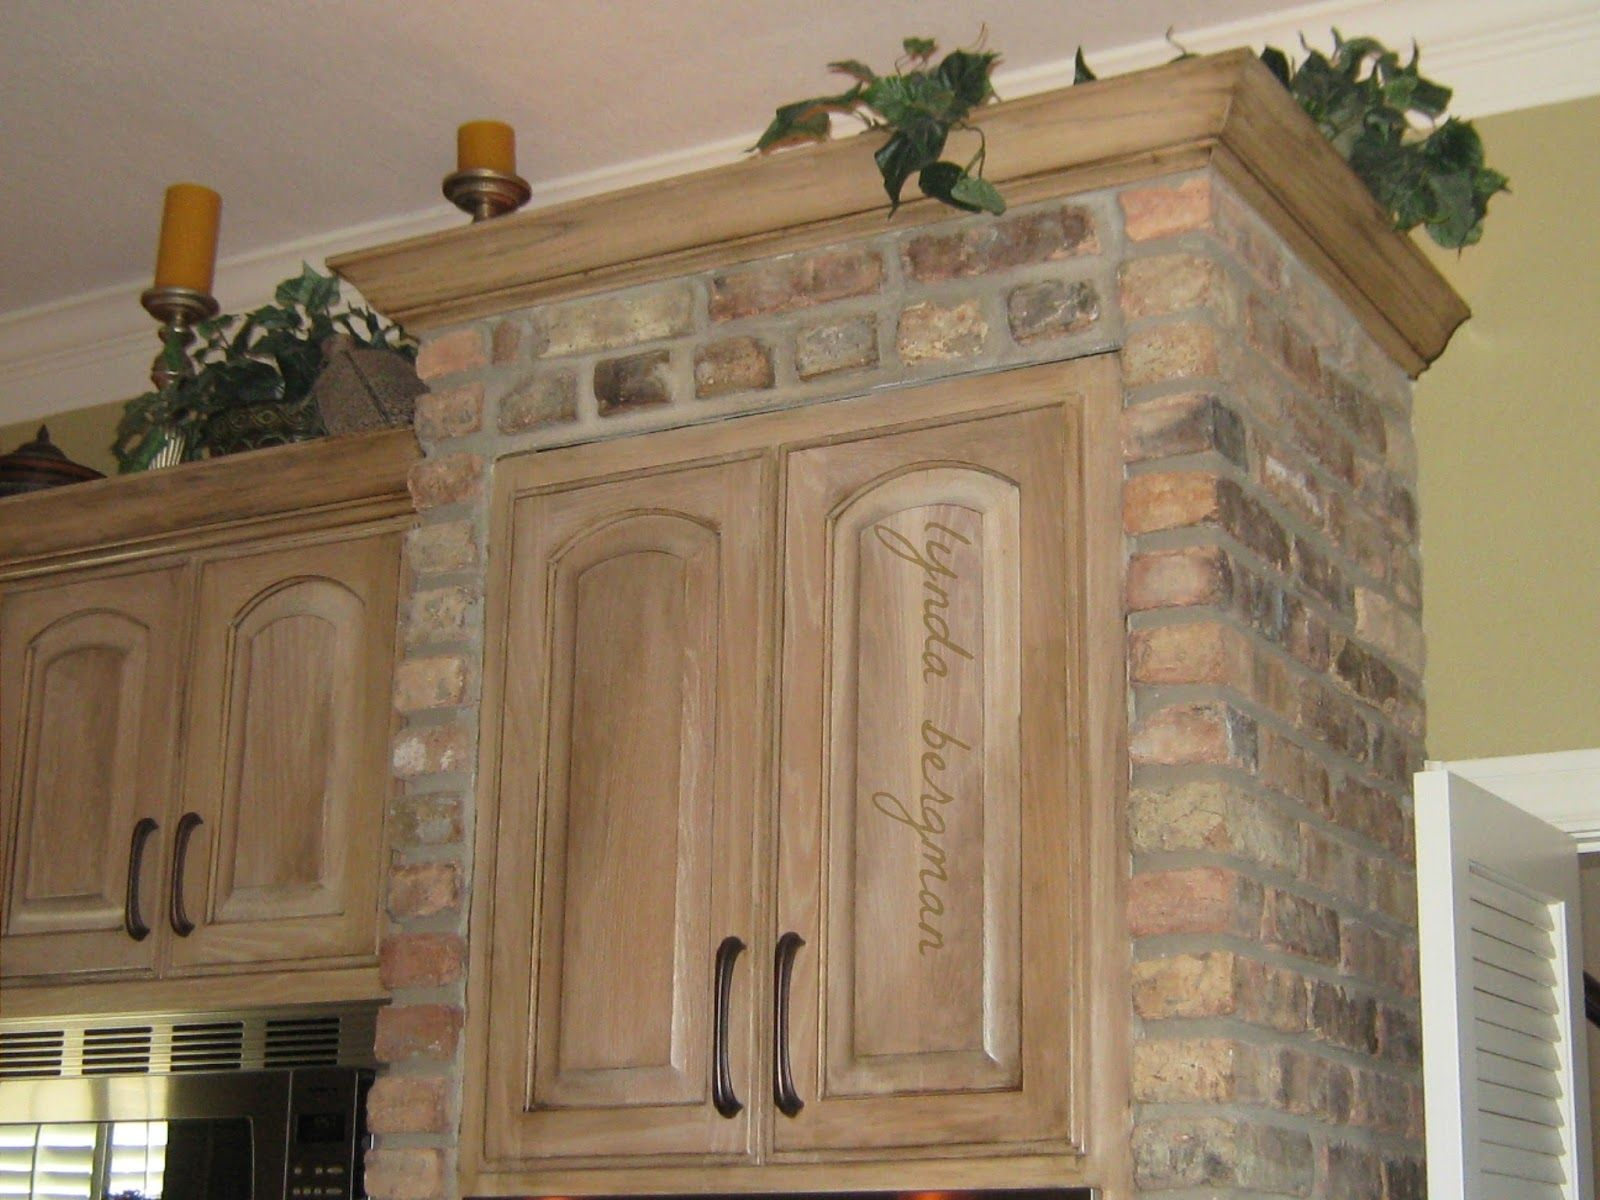 Cabinets that painted for her and better with kitchen white pantry